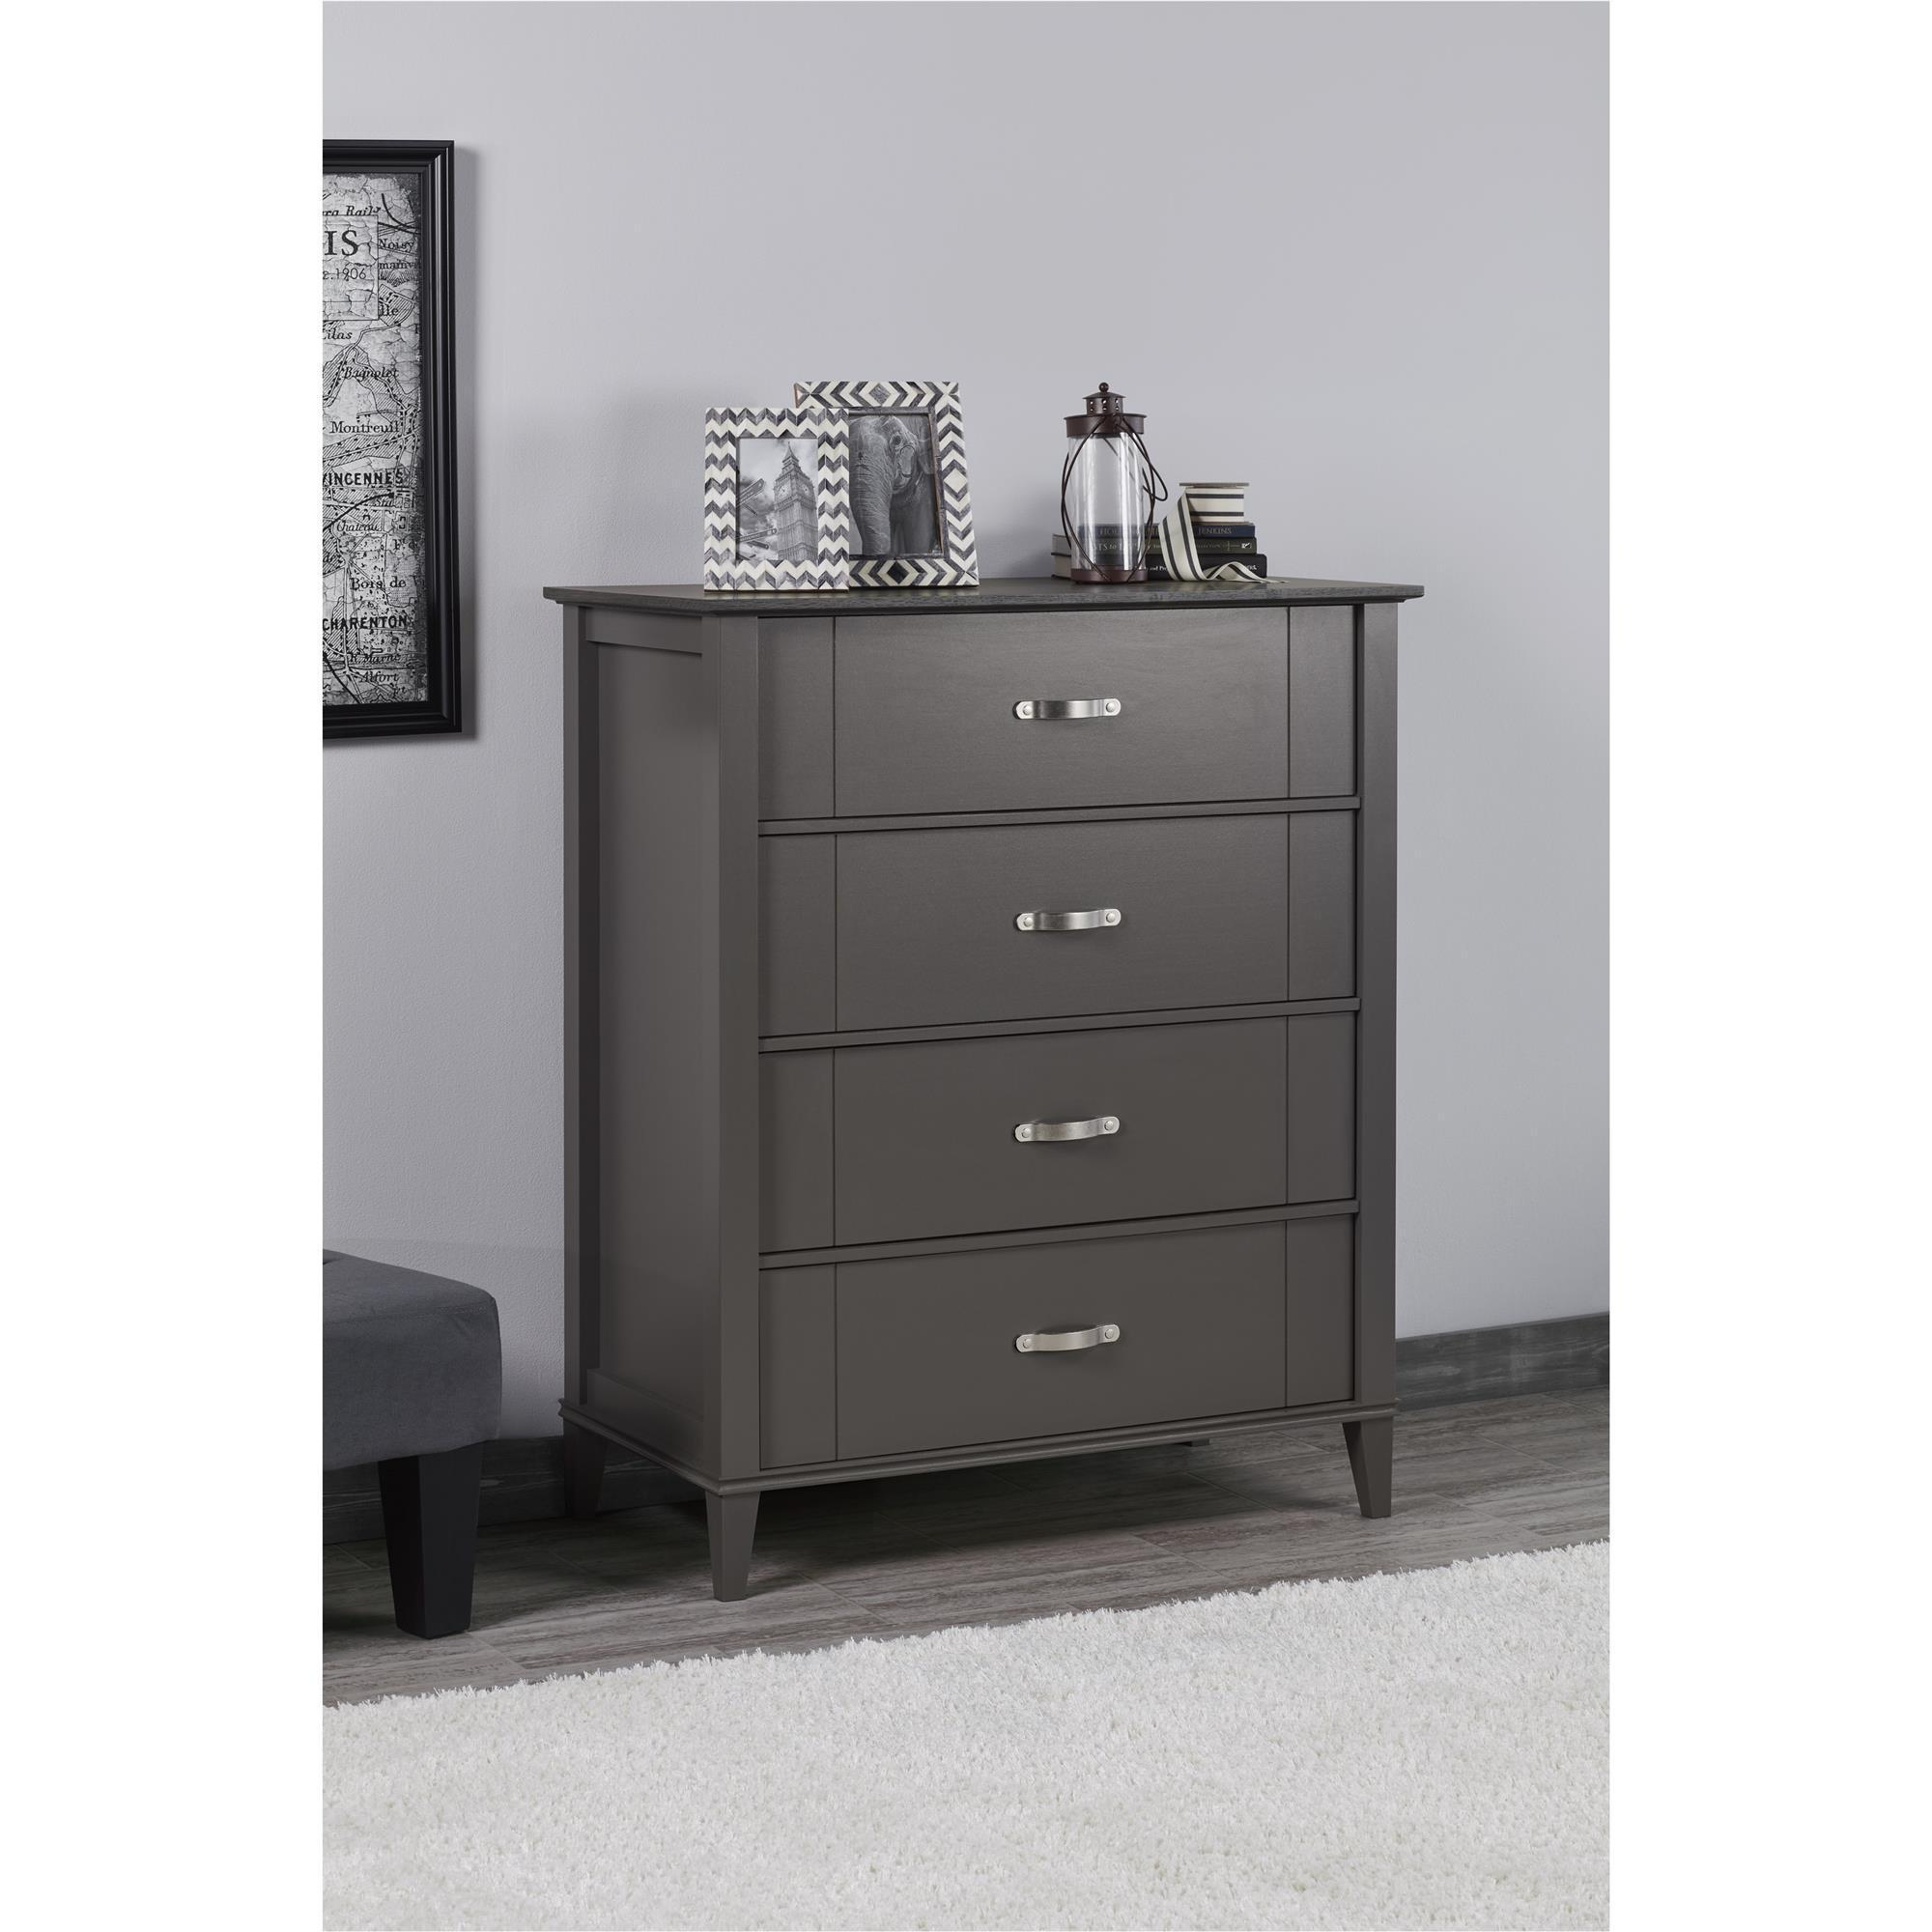 Carbon Loft Ampere Dark Grey Two Tone 4 Drawer Dresser Free Shipping Today 12456863